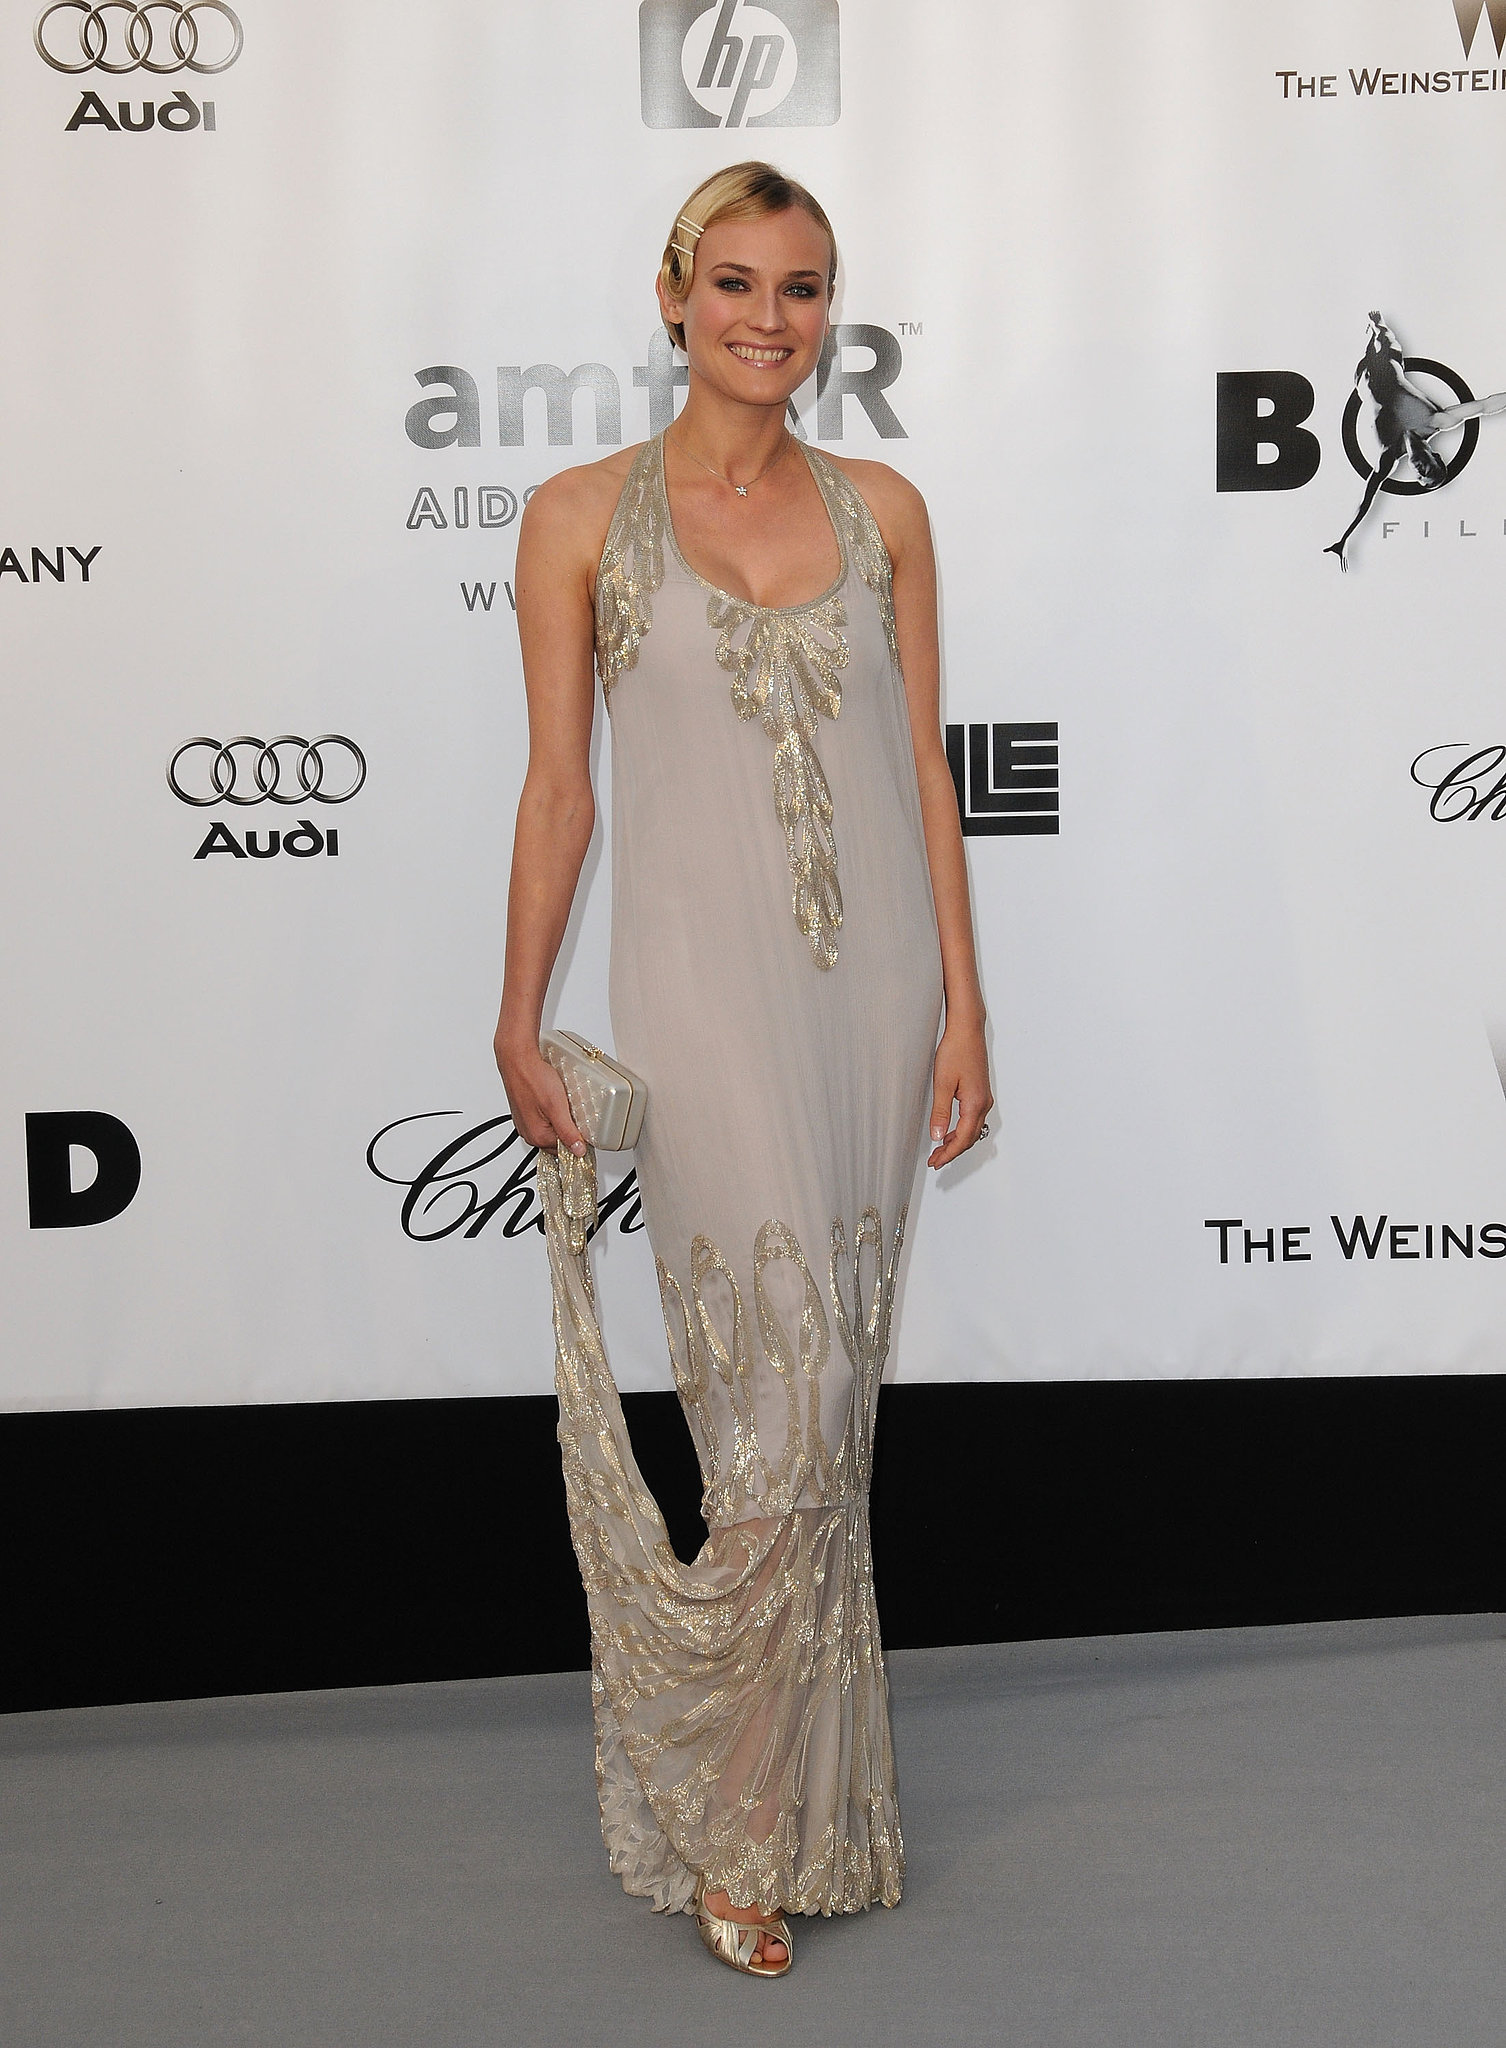 Here's an elegant example of flapper fashion — Diane Kruger wore a silver embroidered Chanel Haute Couture gown, complete with marcel waves, to the 2008 amfAR Cinema Against AIDS gala.